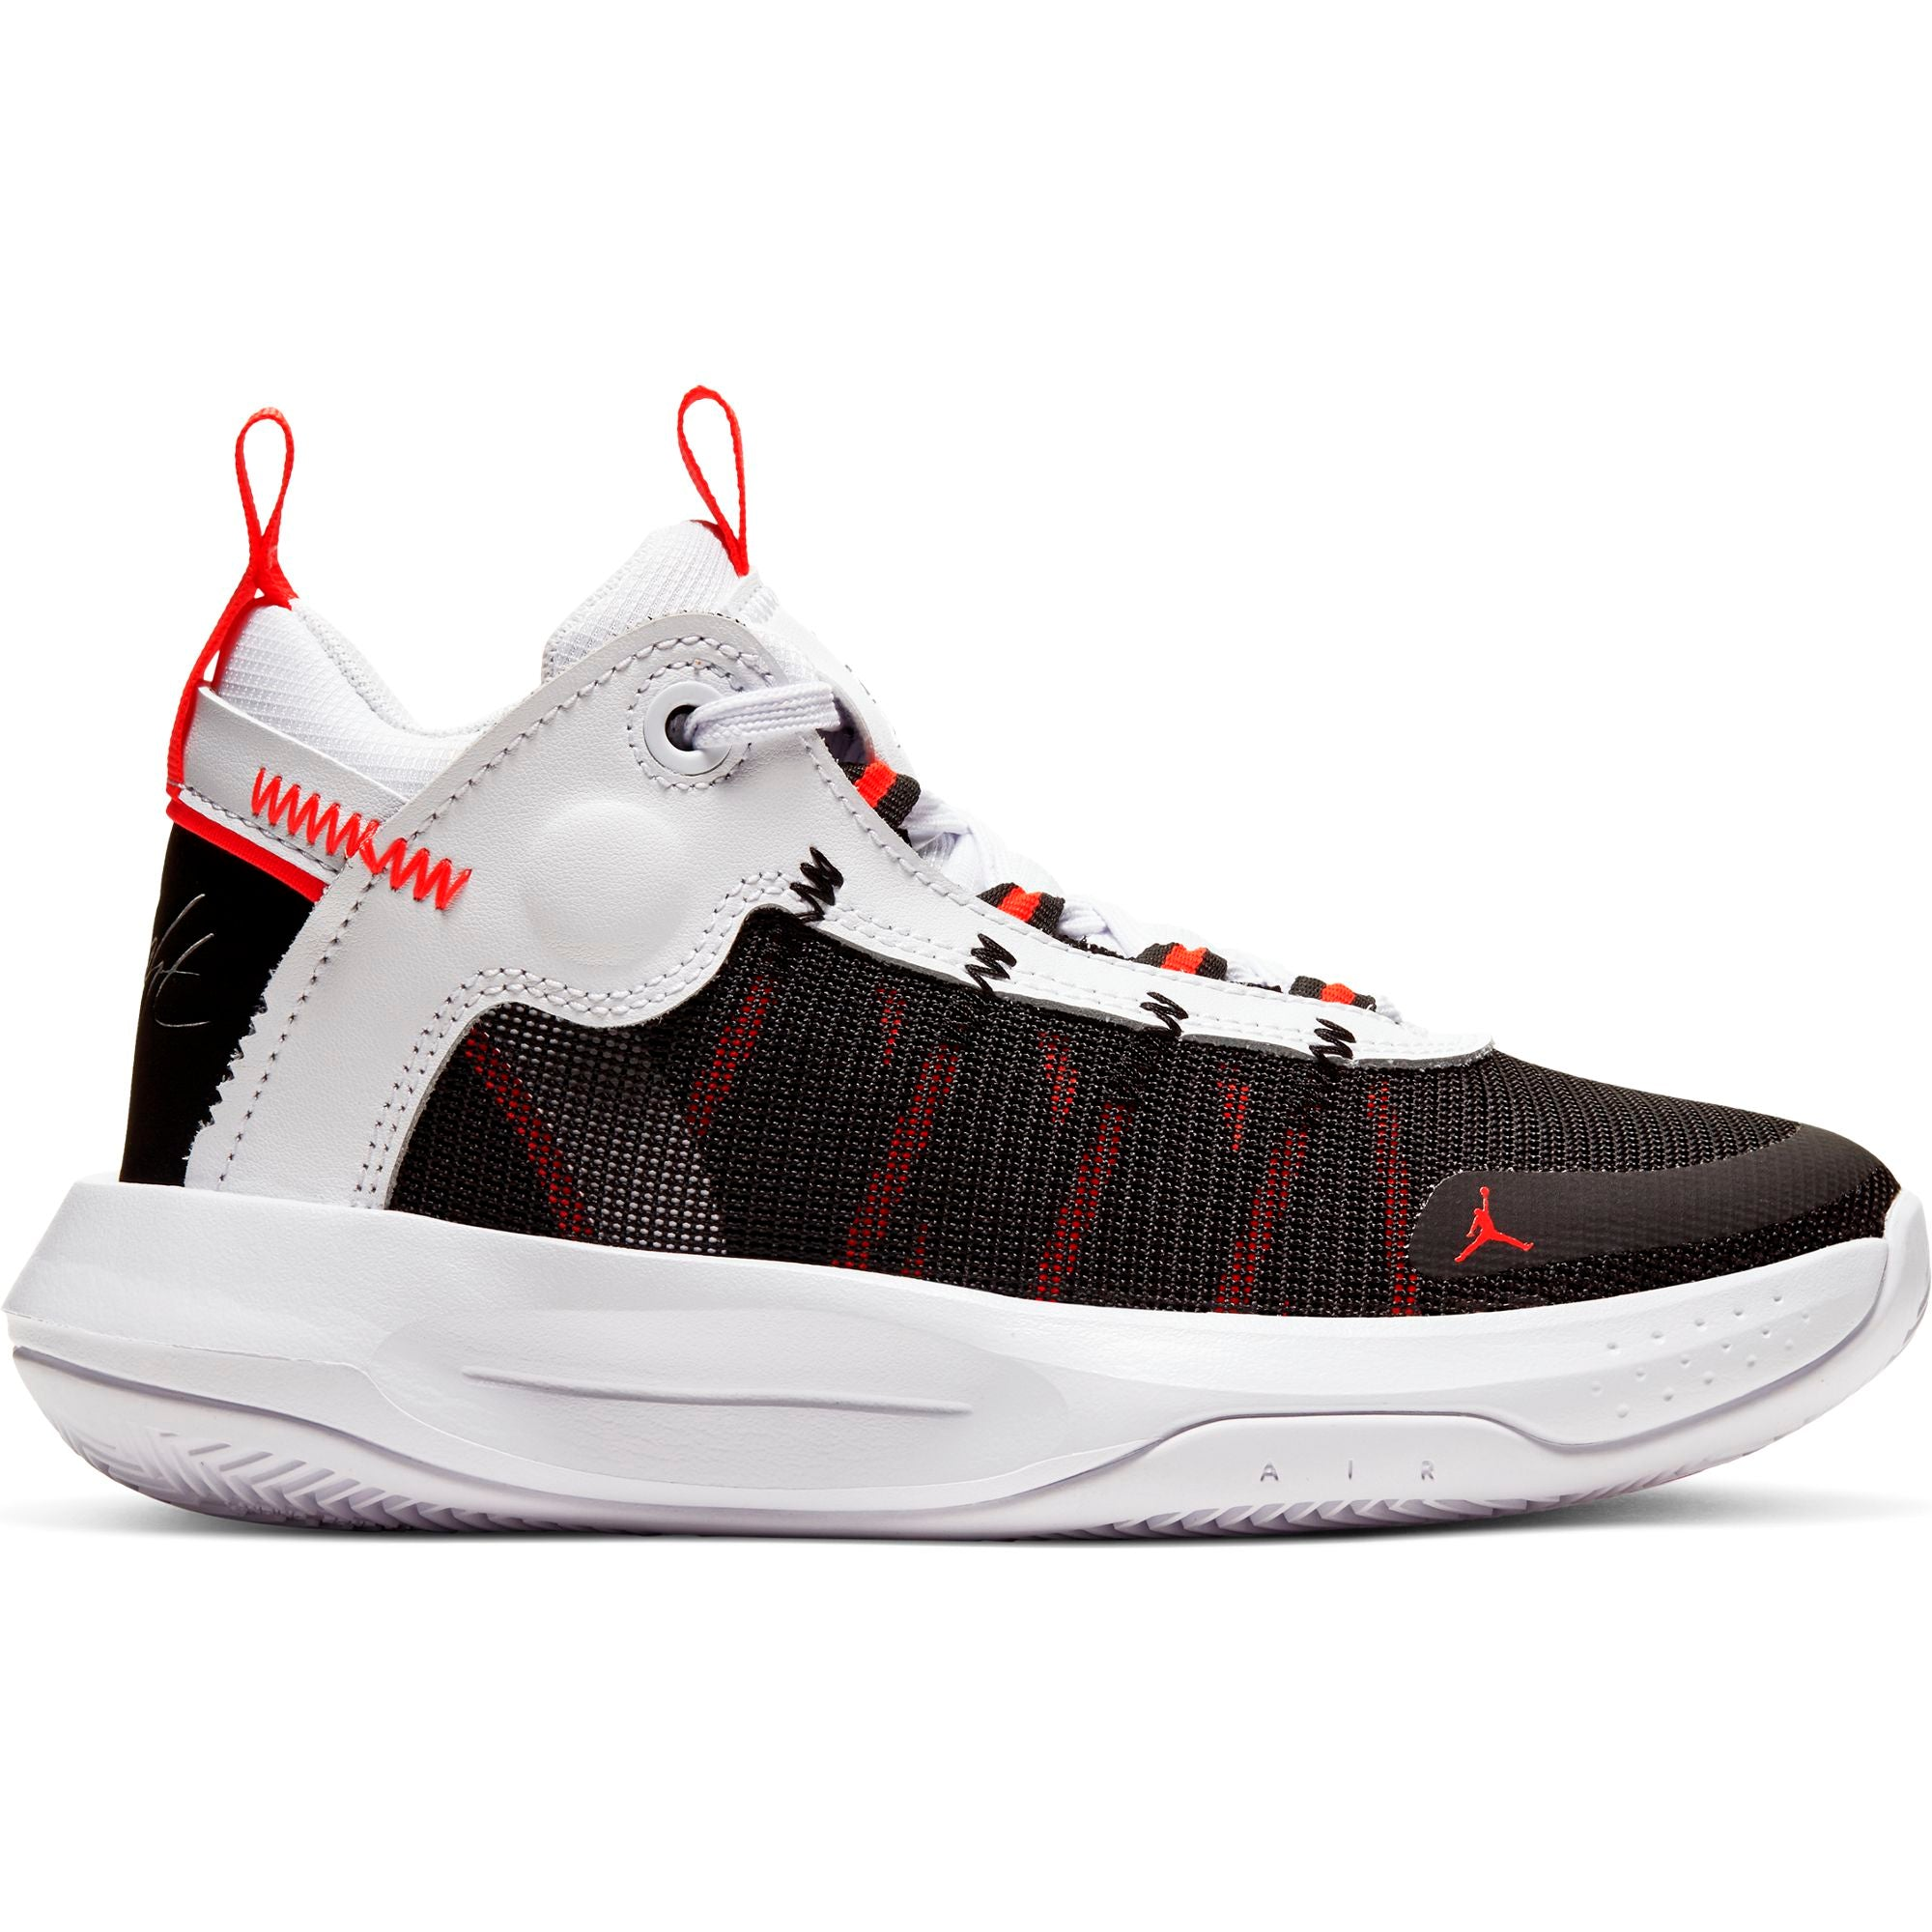 Nike Kids Jordan Jumpman 2020 Basketball Boot/shoe - White/Metallic Silver/Black/Red Orbit